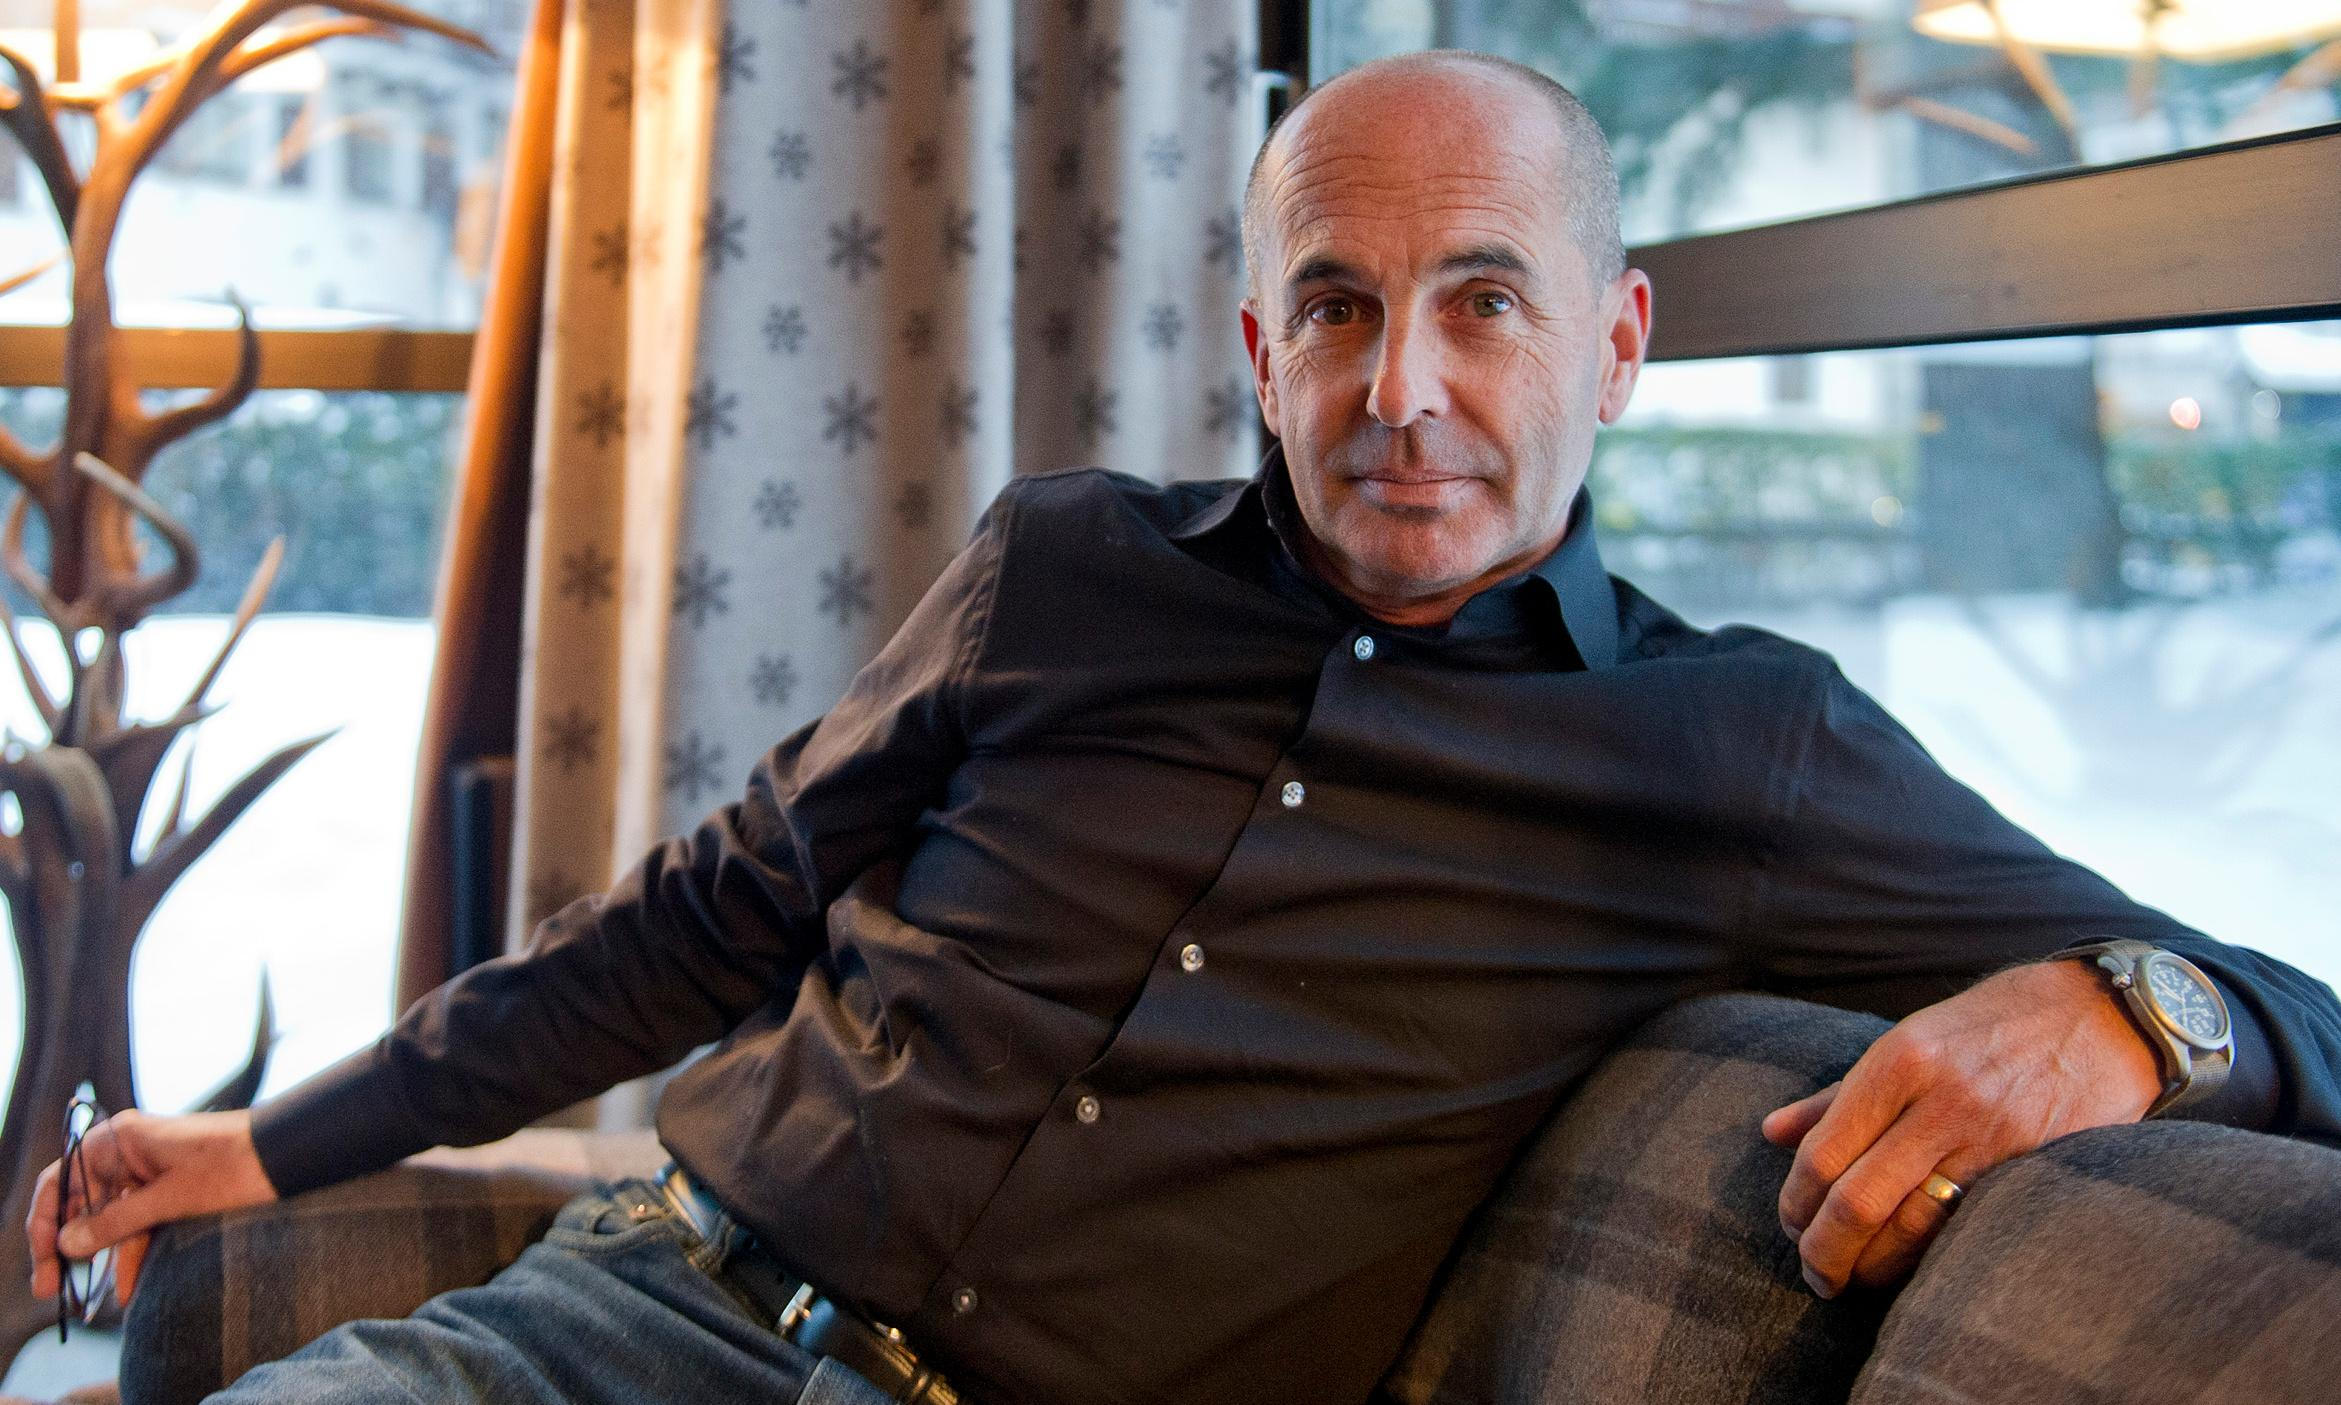 Crime writer Don Winslow challenges Trump to border wall debate